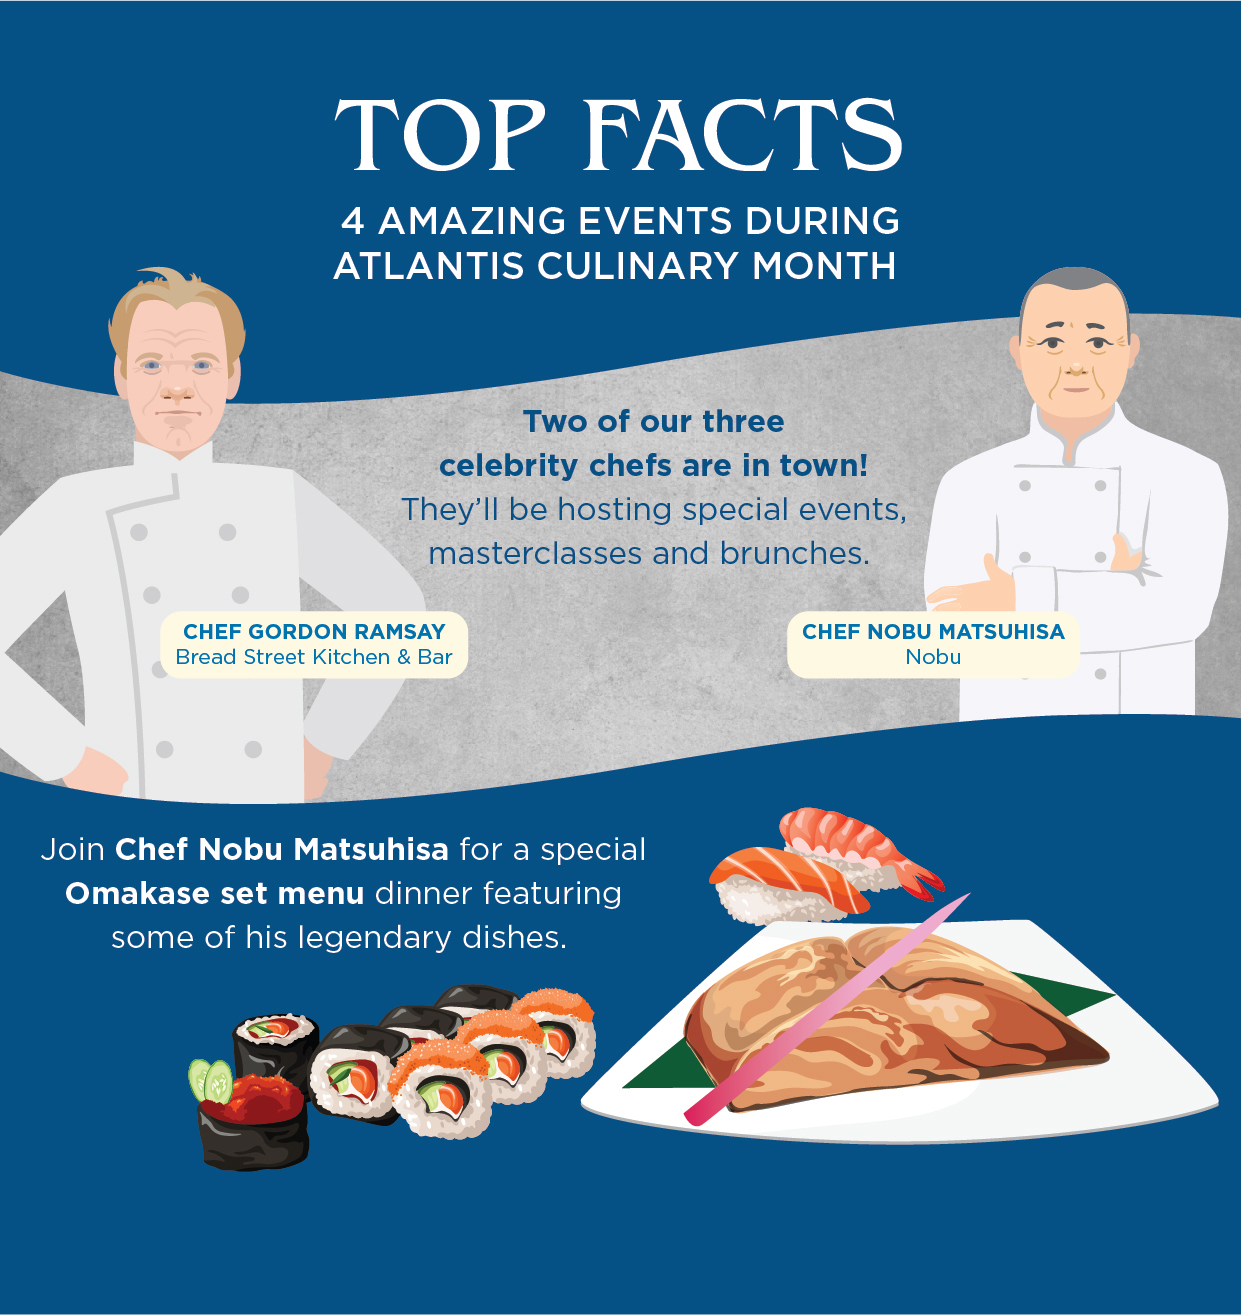 culinary-month-chef-nobu-omakase-menu-atlantis-dubai